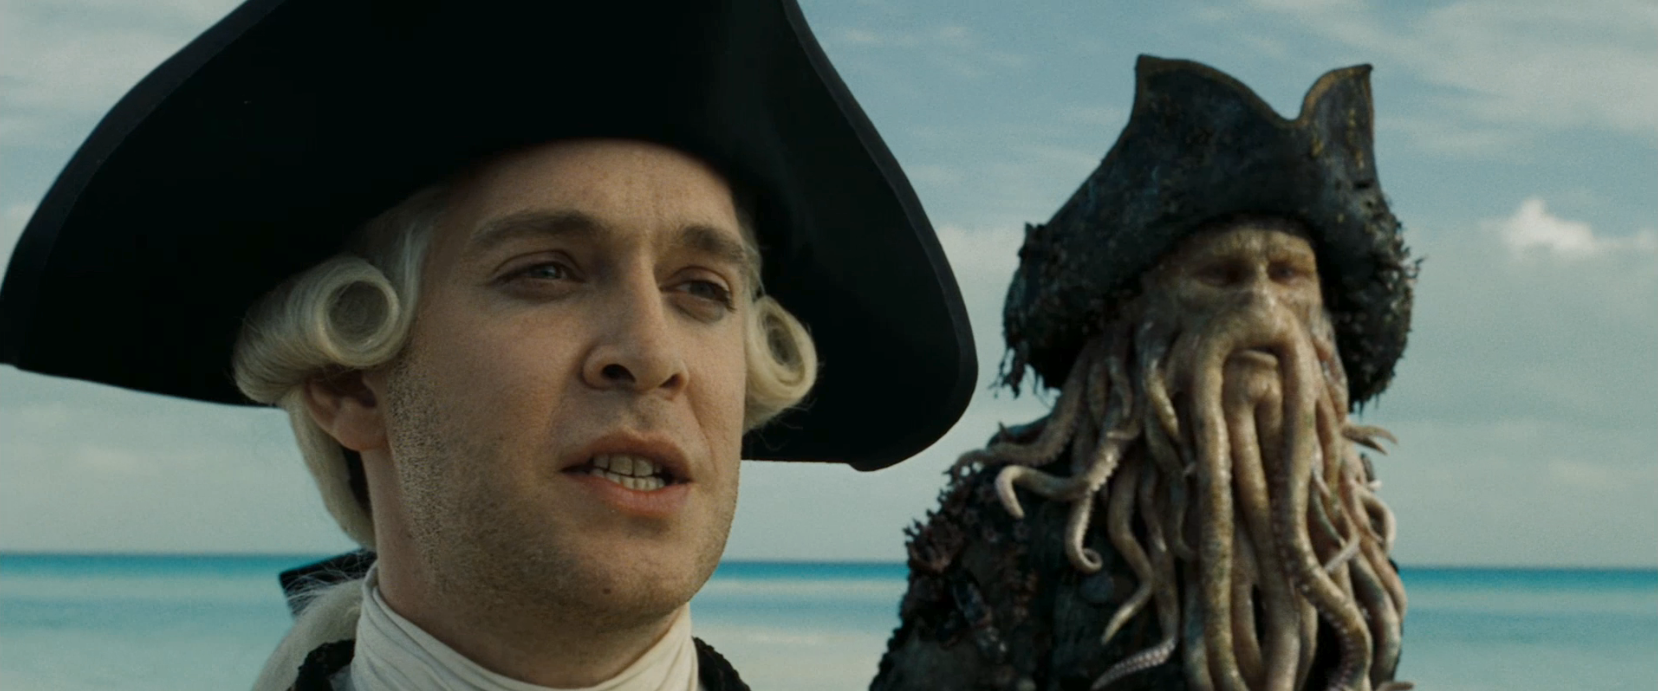 pirates of the caribbean 4 torrent